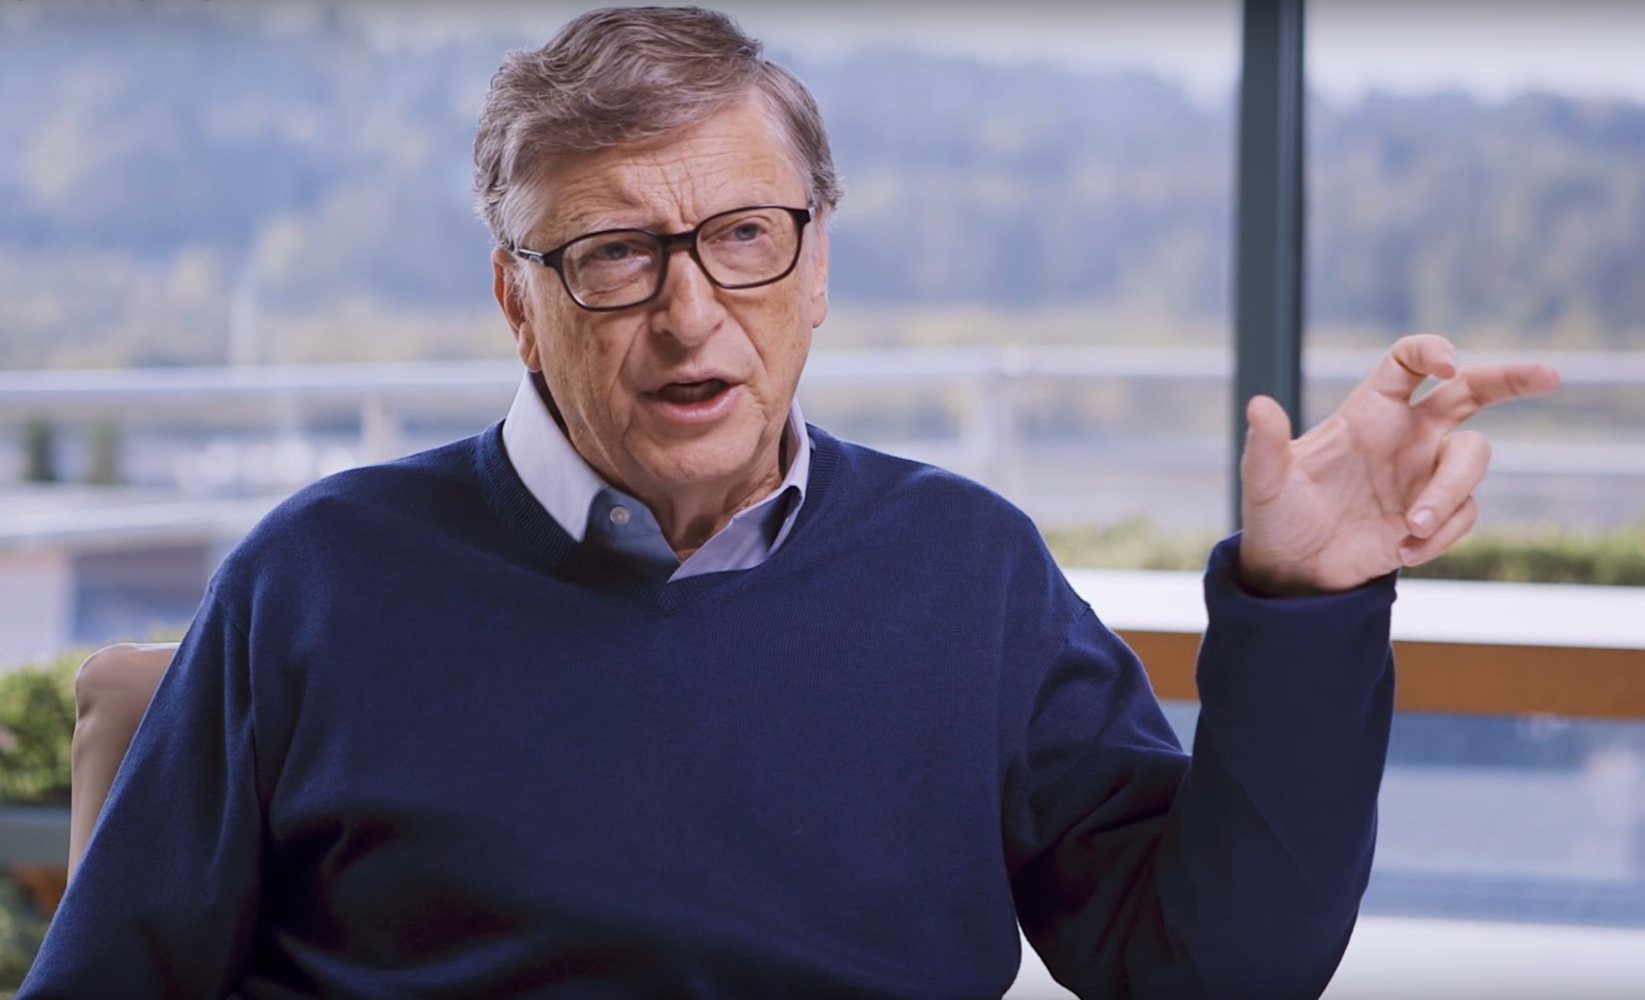 bill gates research Browse bill gates news, research and analysis from the conversation.